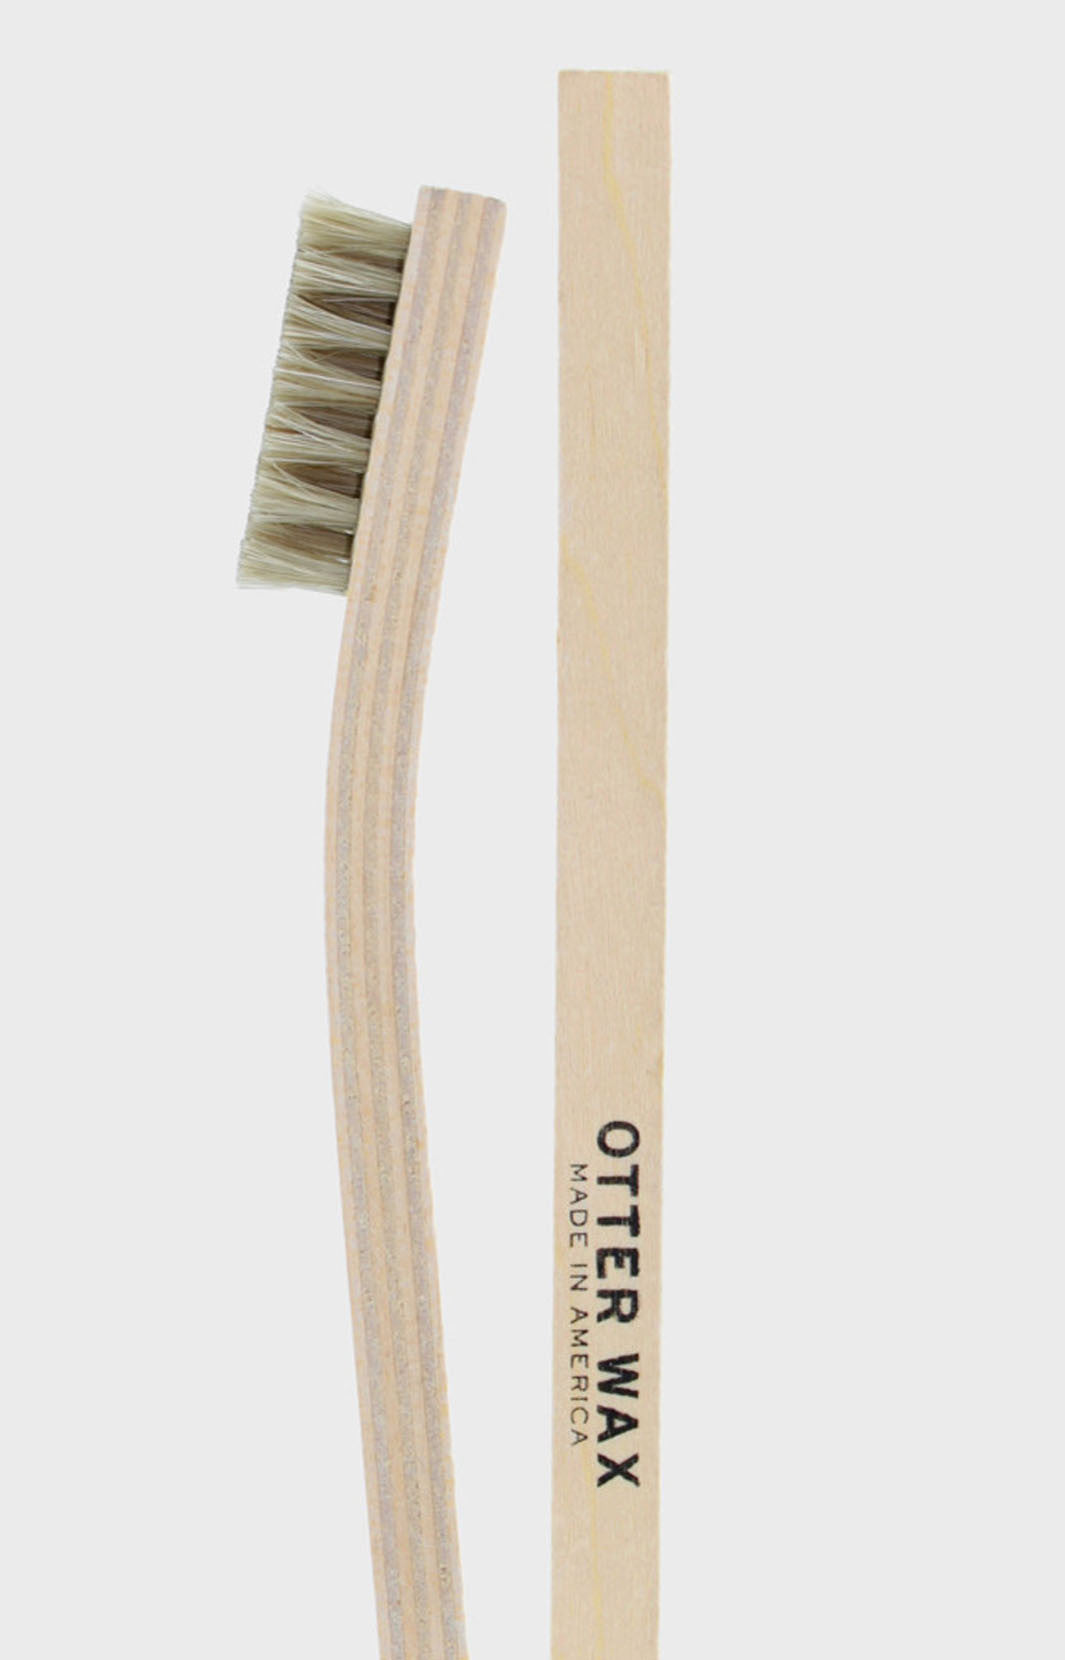 shoe buff brush, leather brush, horse hair brush, otter wax